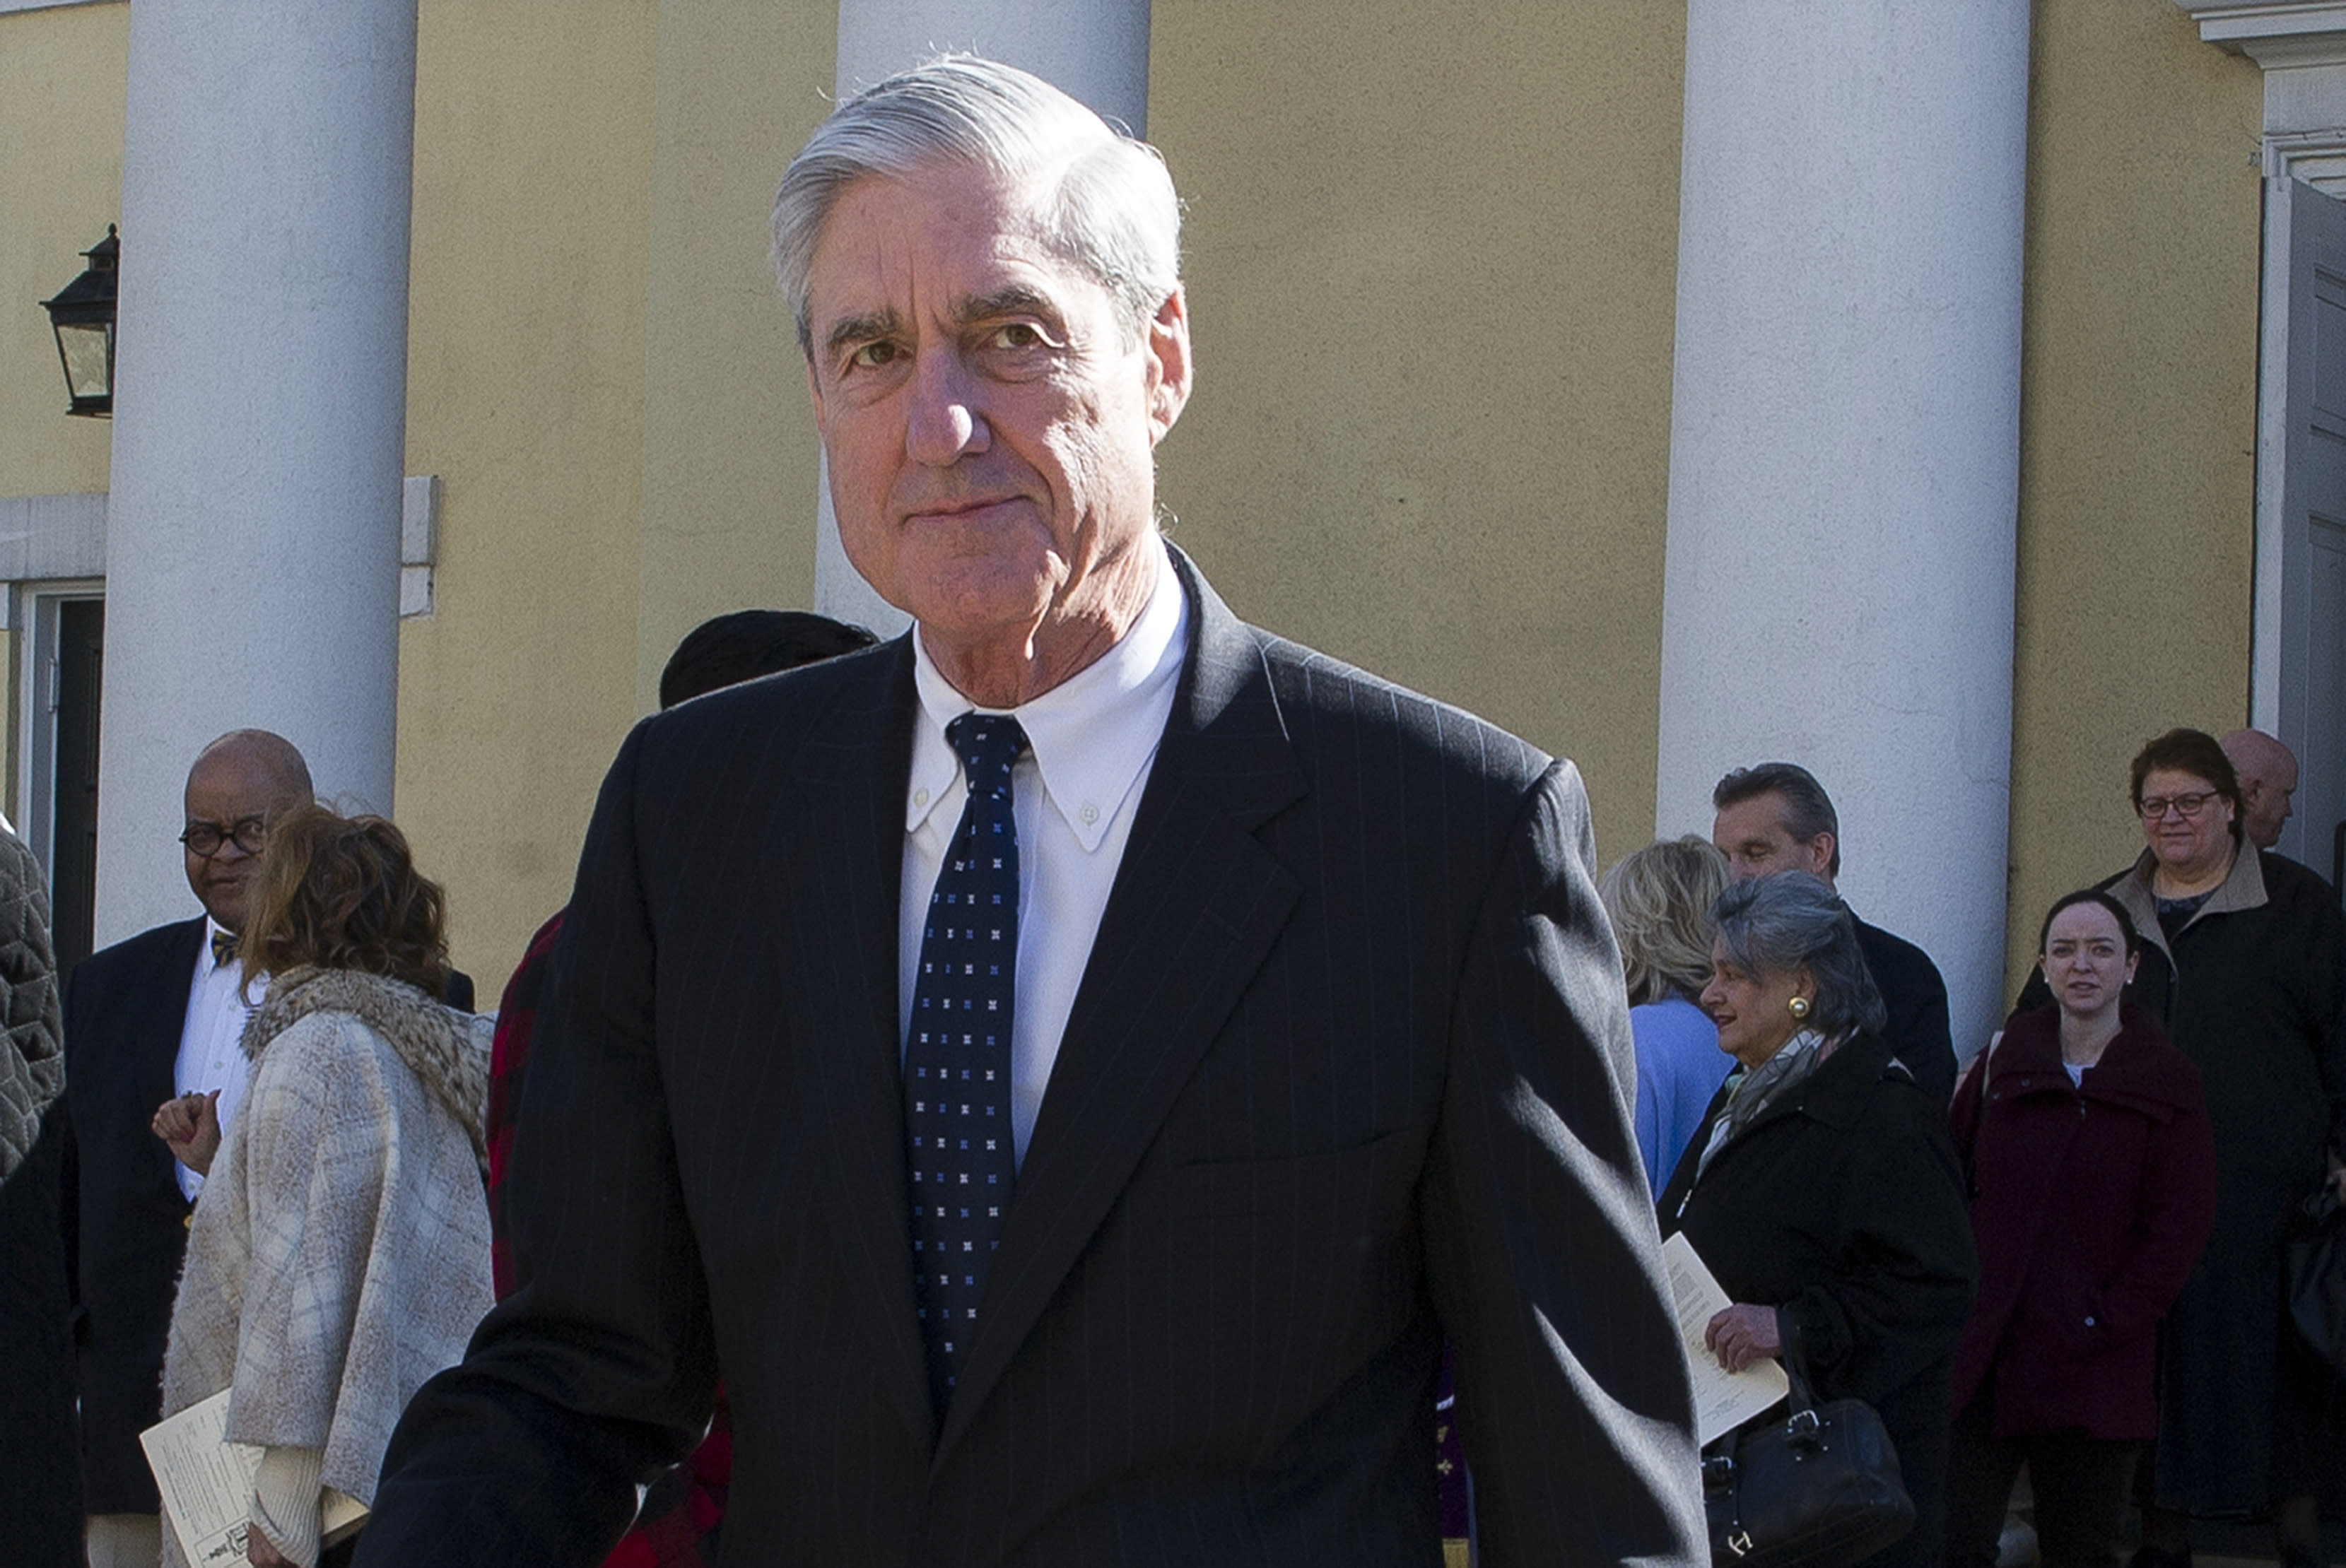 The Latest: Mueller frustrated by Barr summary